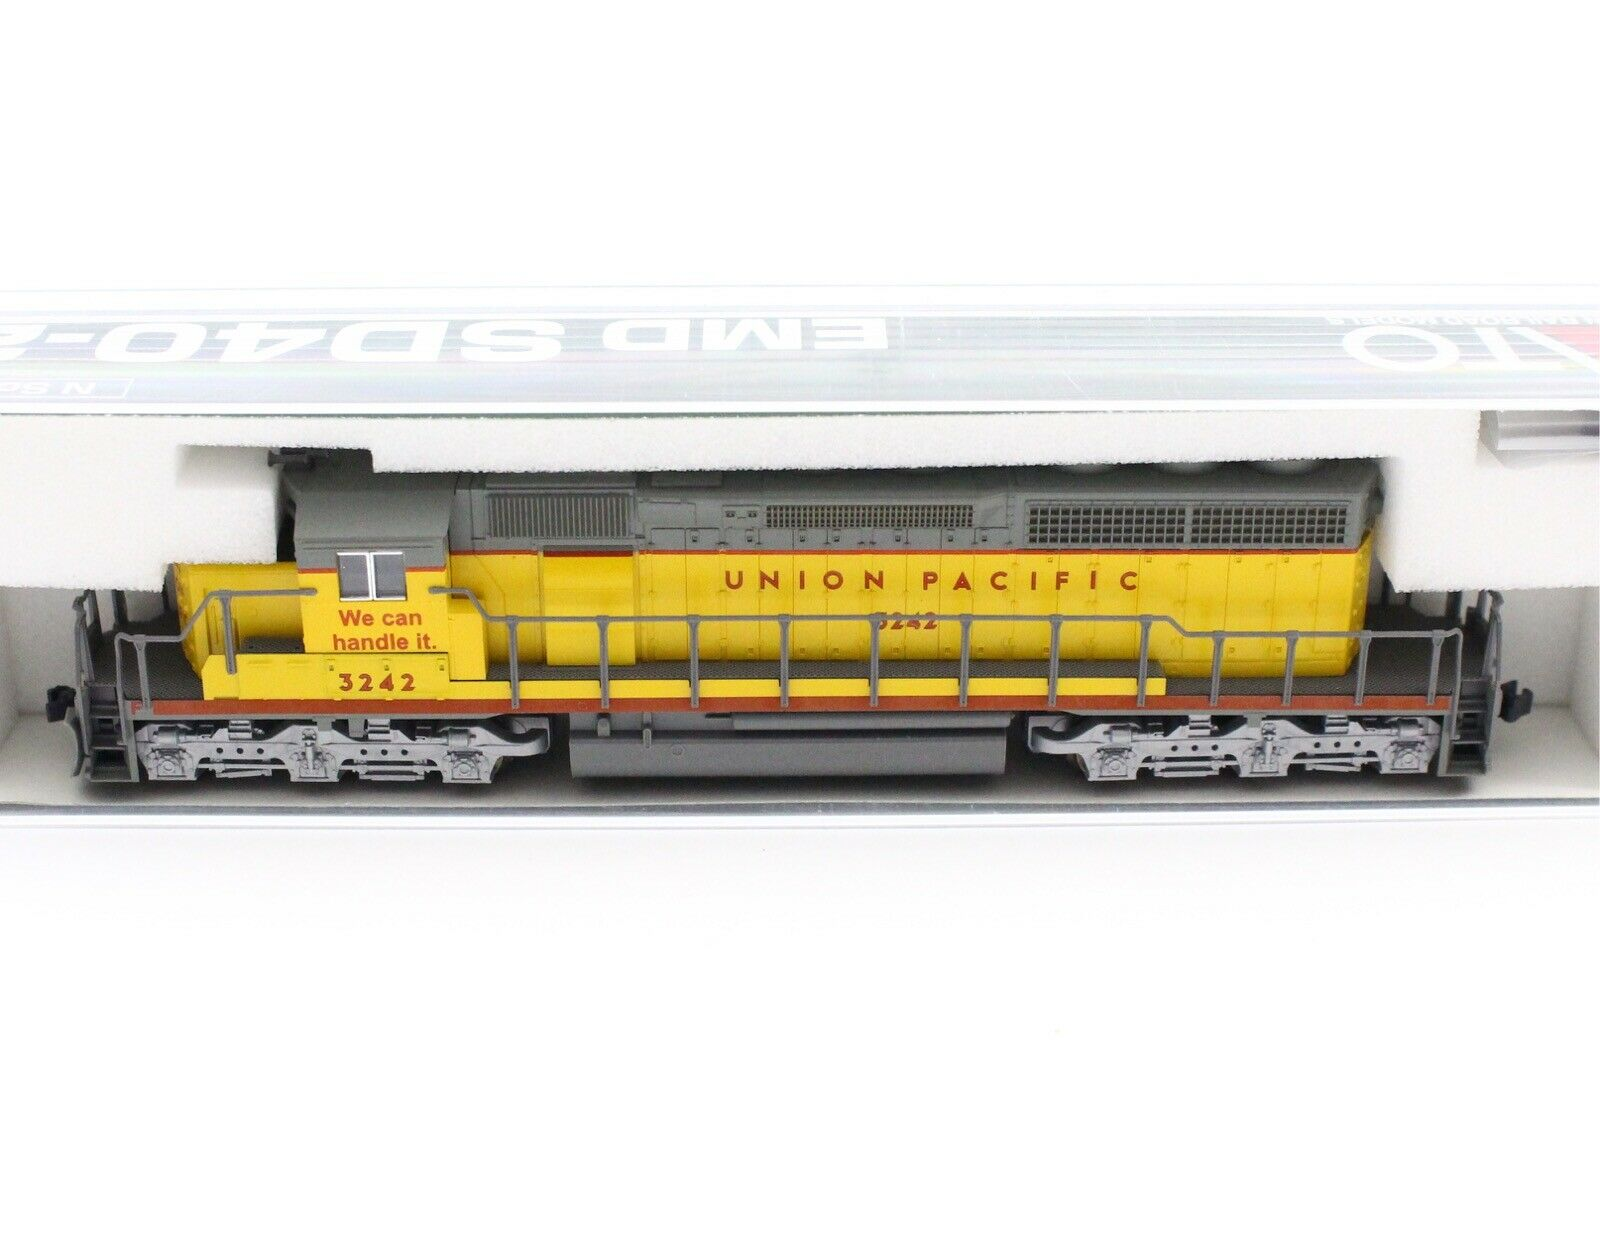 Union Pacific UP 3242 EMD SD40-2 Early KATO N 176-4813